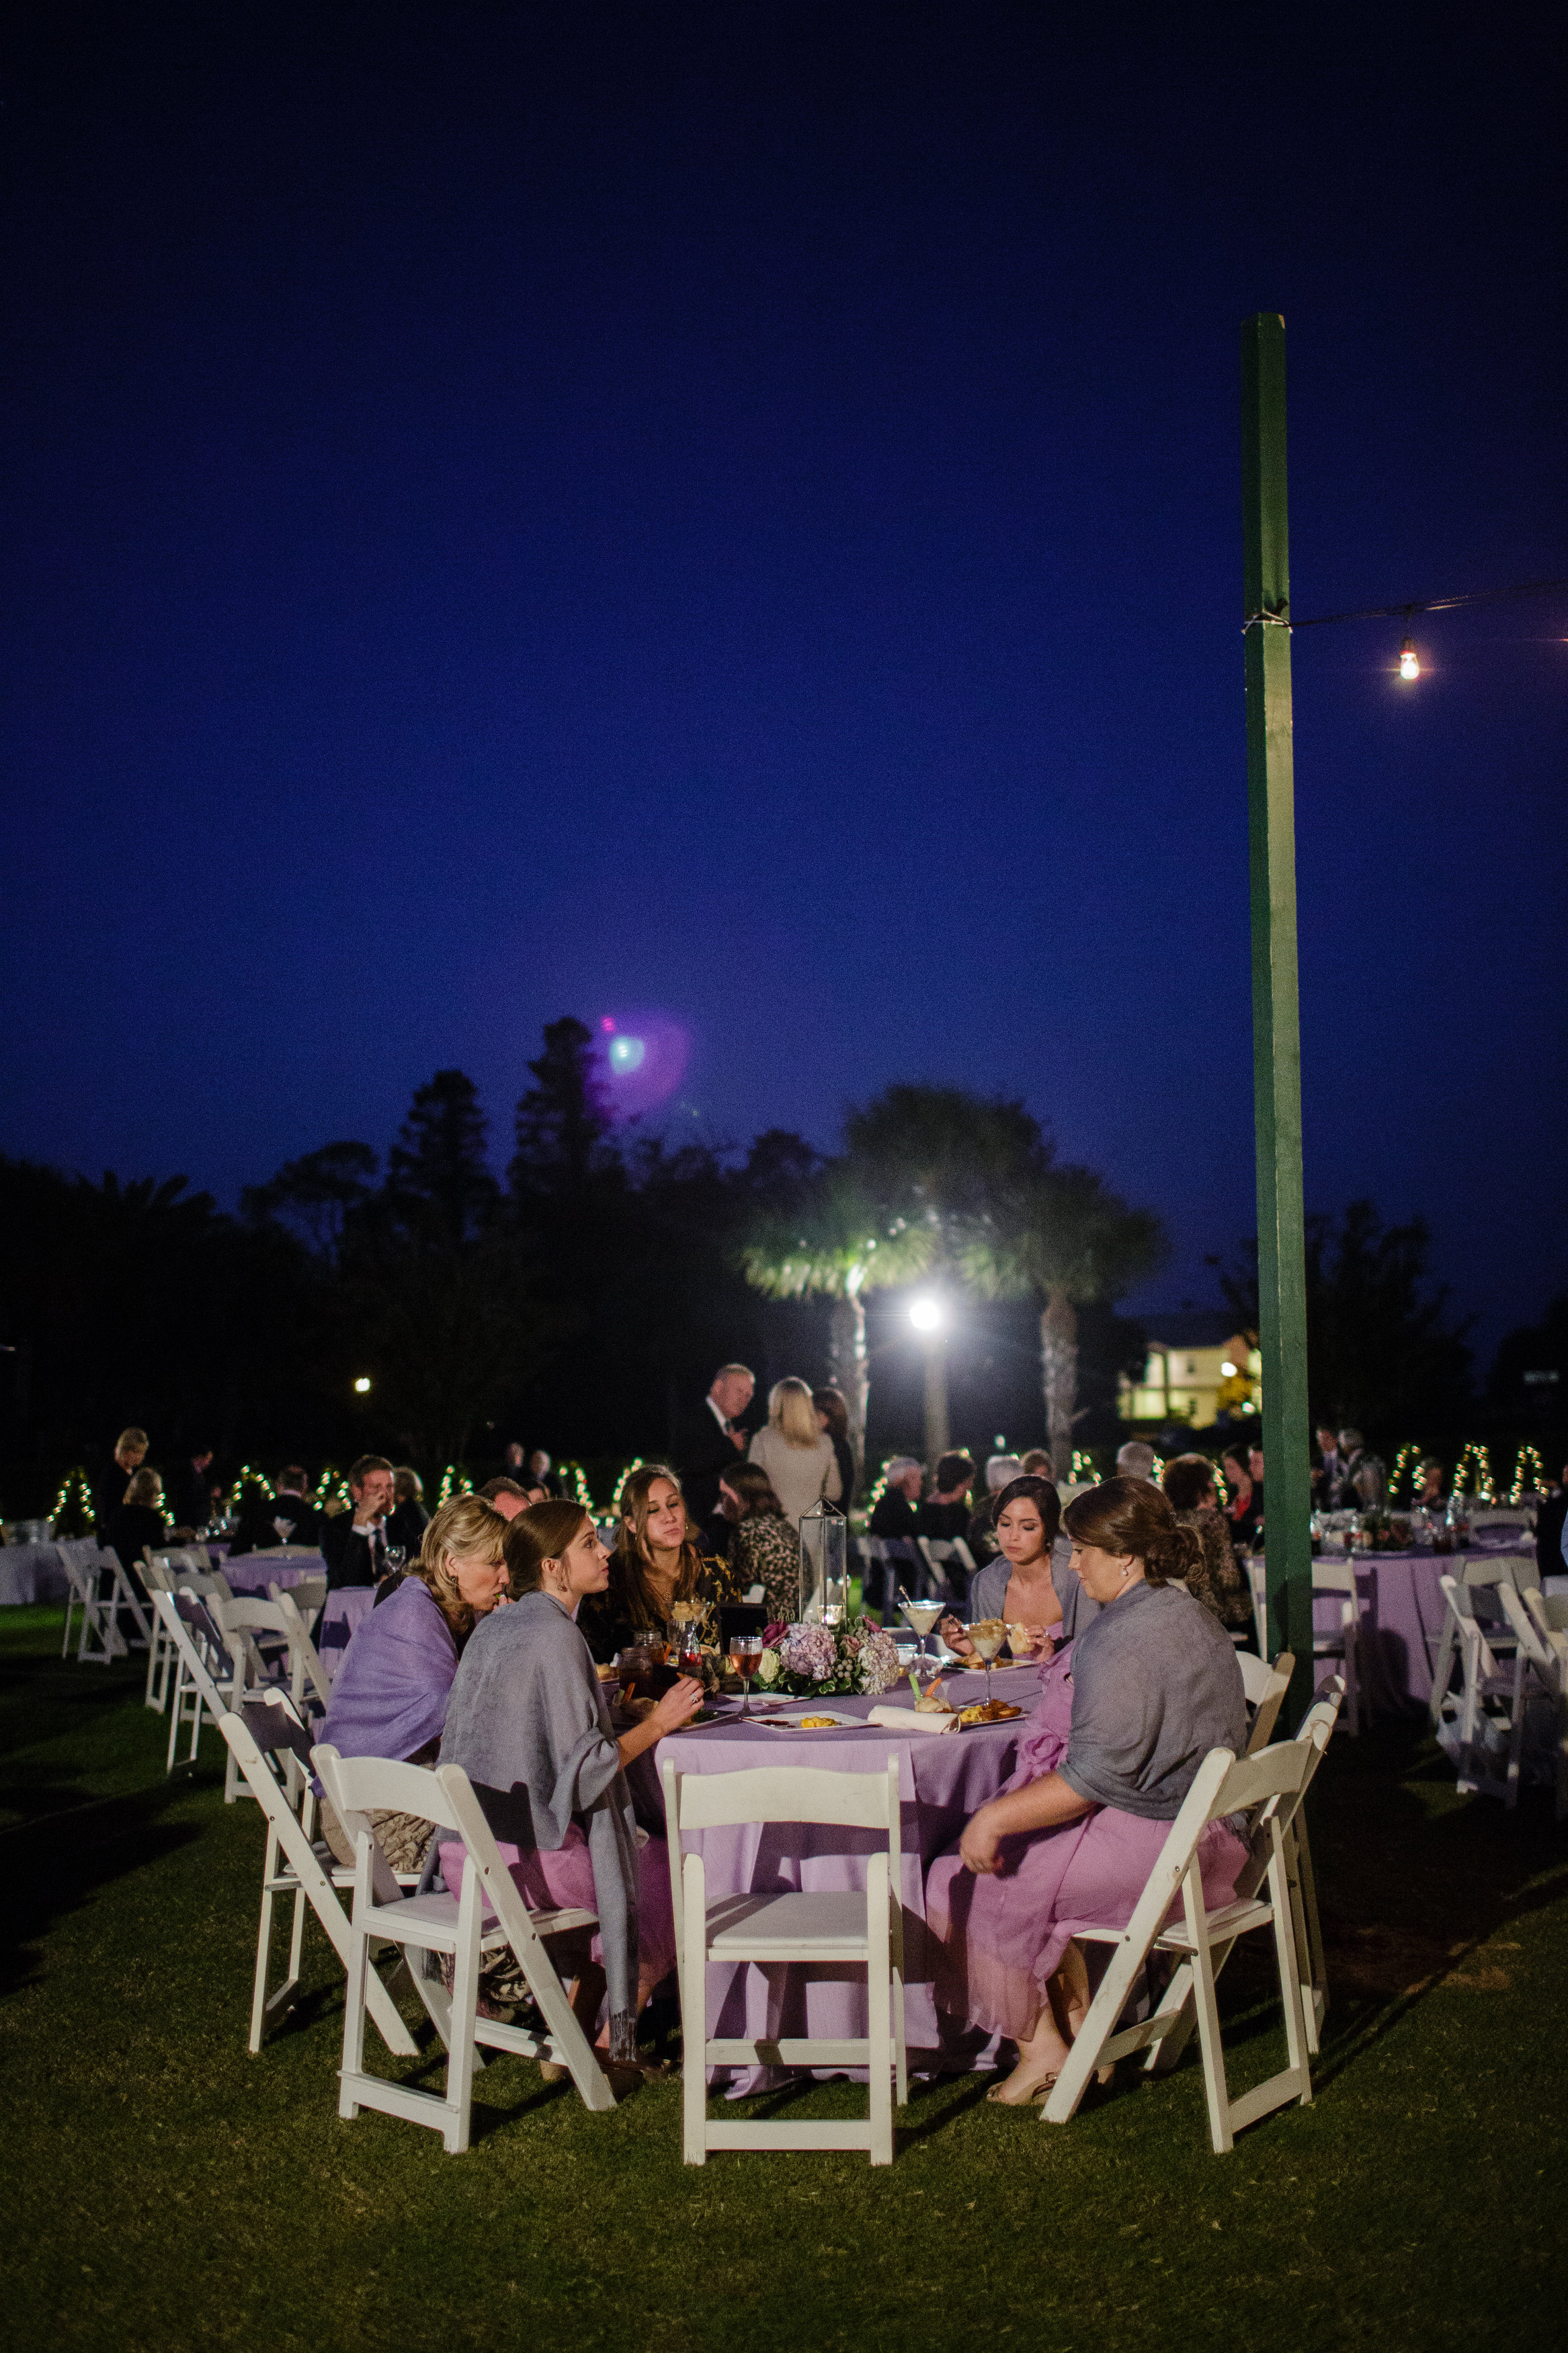 If you look closely, you can see my mom wrapped up in her very own pashmina in lovely wedding lavender!